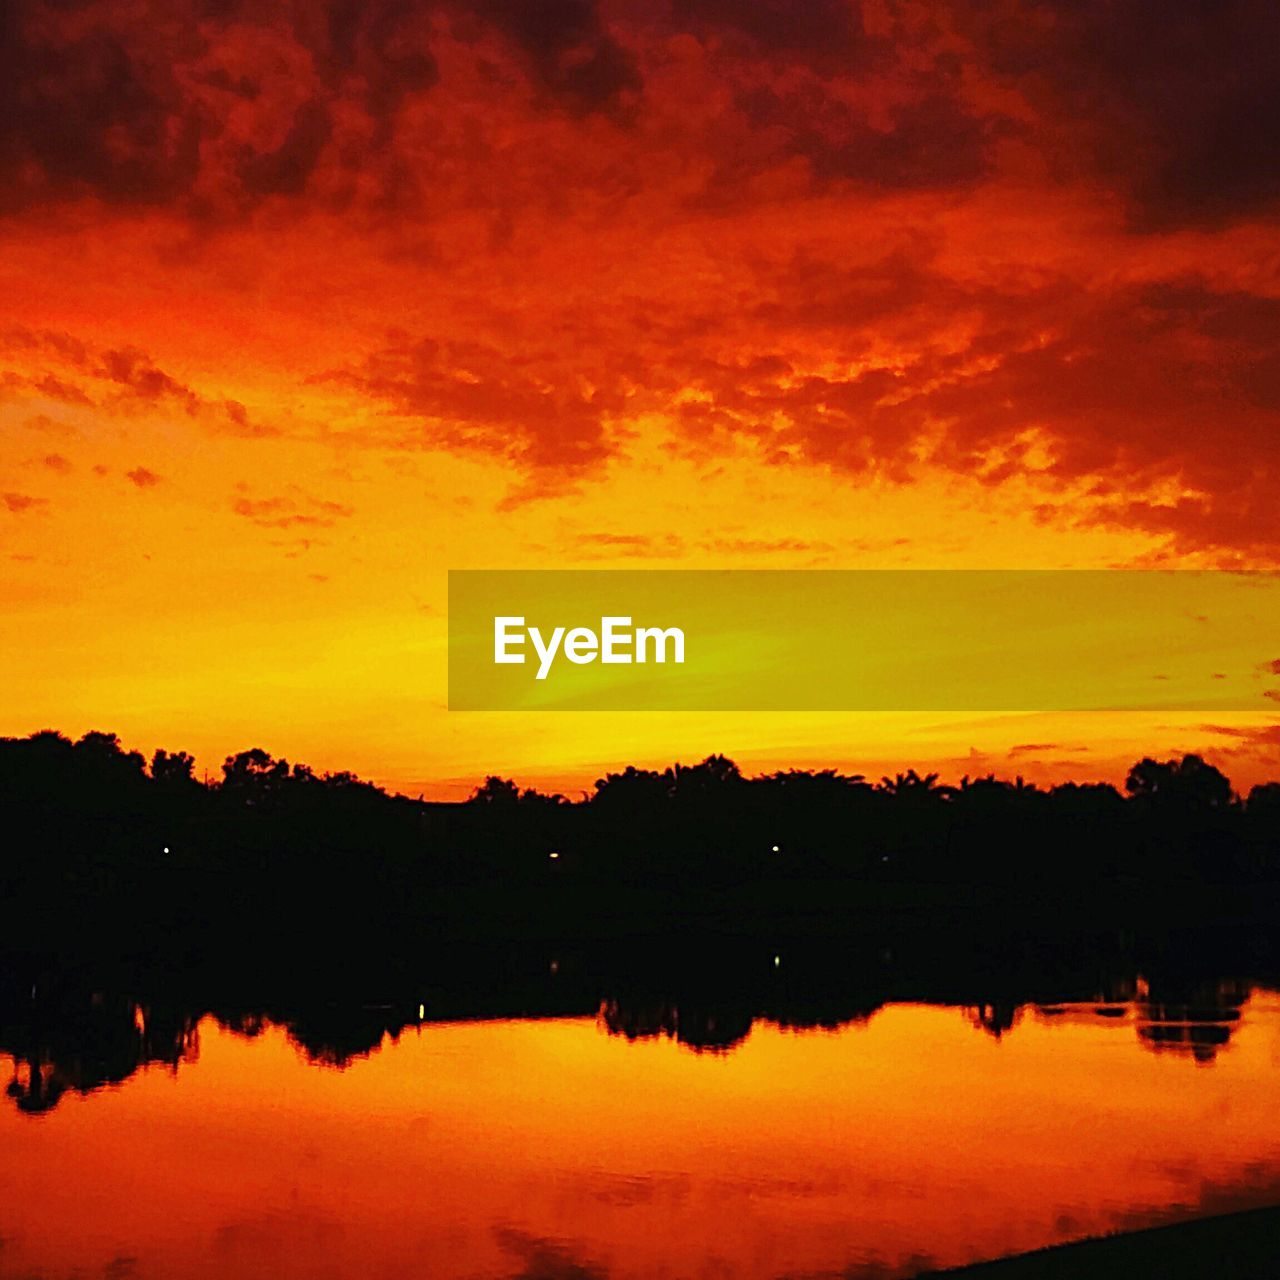 sunset, orange color, silhouette, nature, beauty in nature, tranquil scene, scenics, sky, tranquility, tree, reflection, outdoors, no people, water, cloud - sky